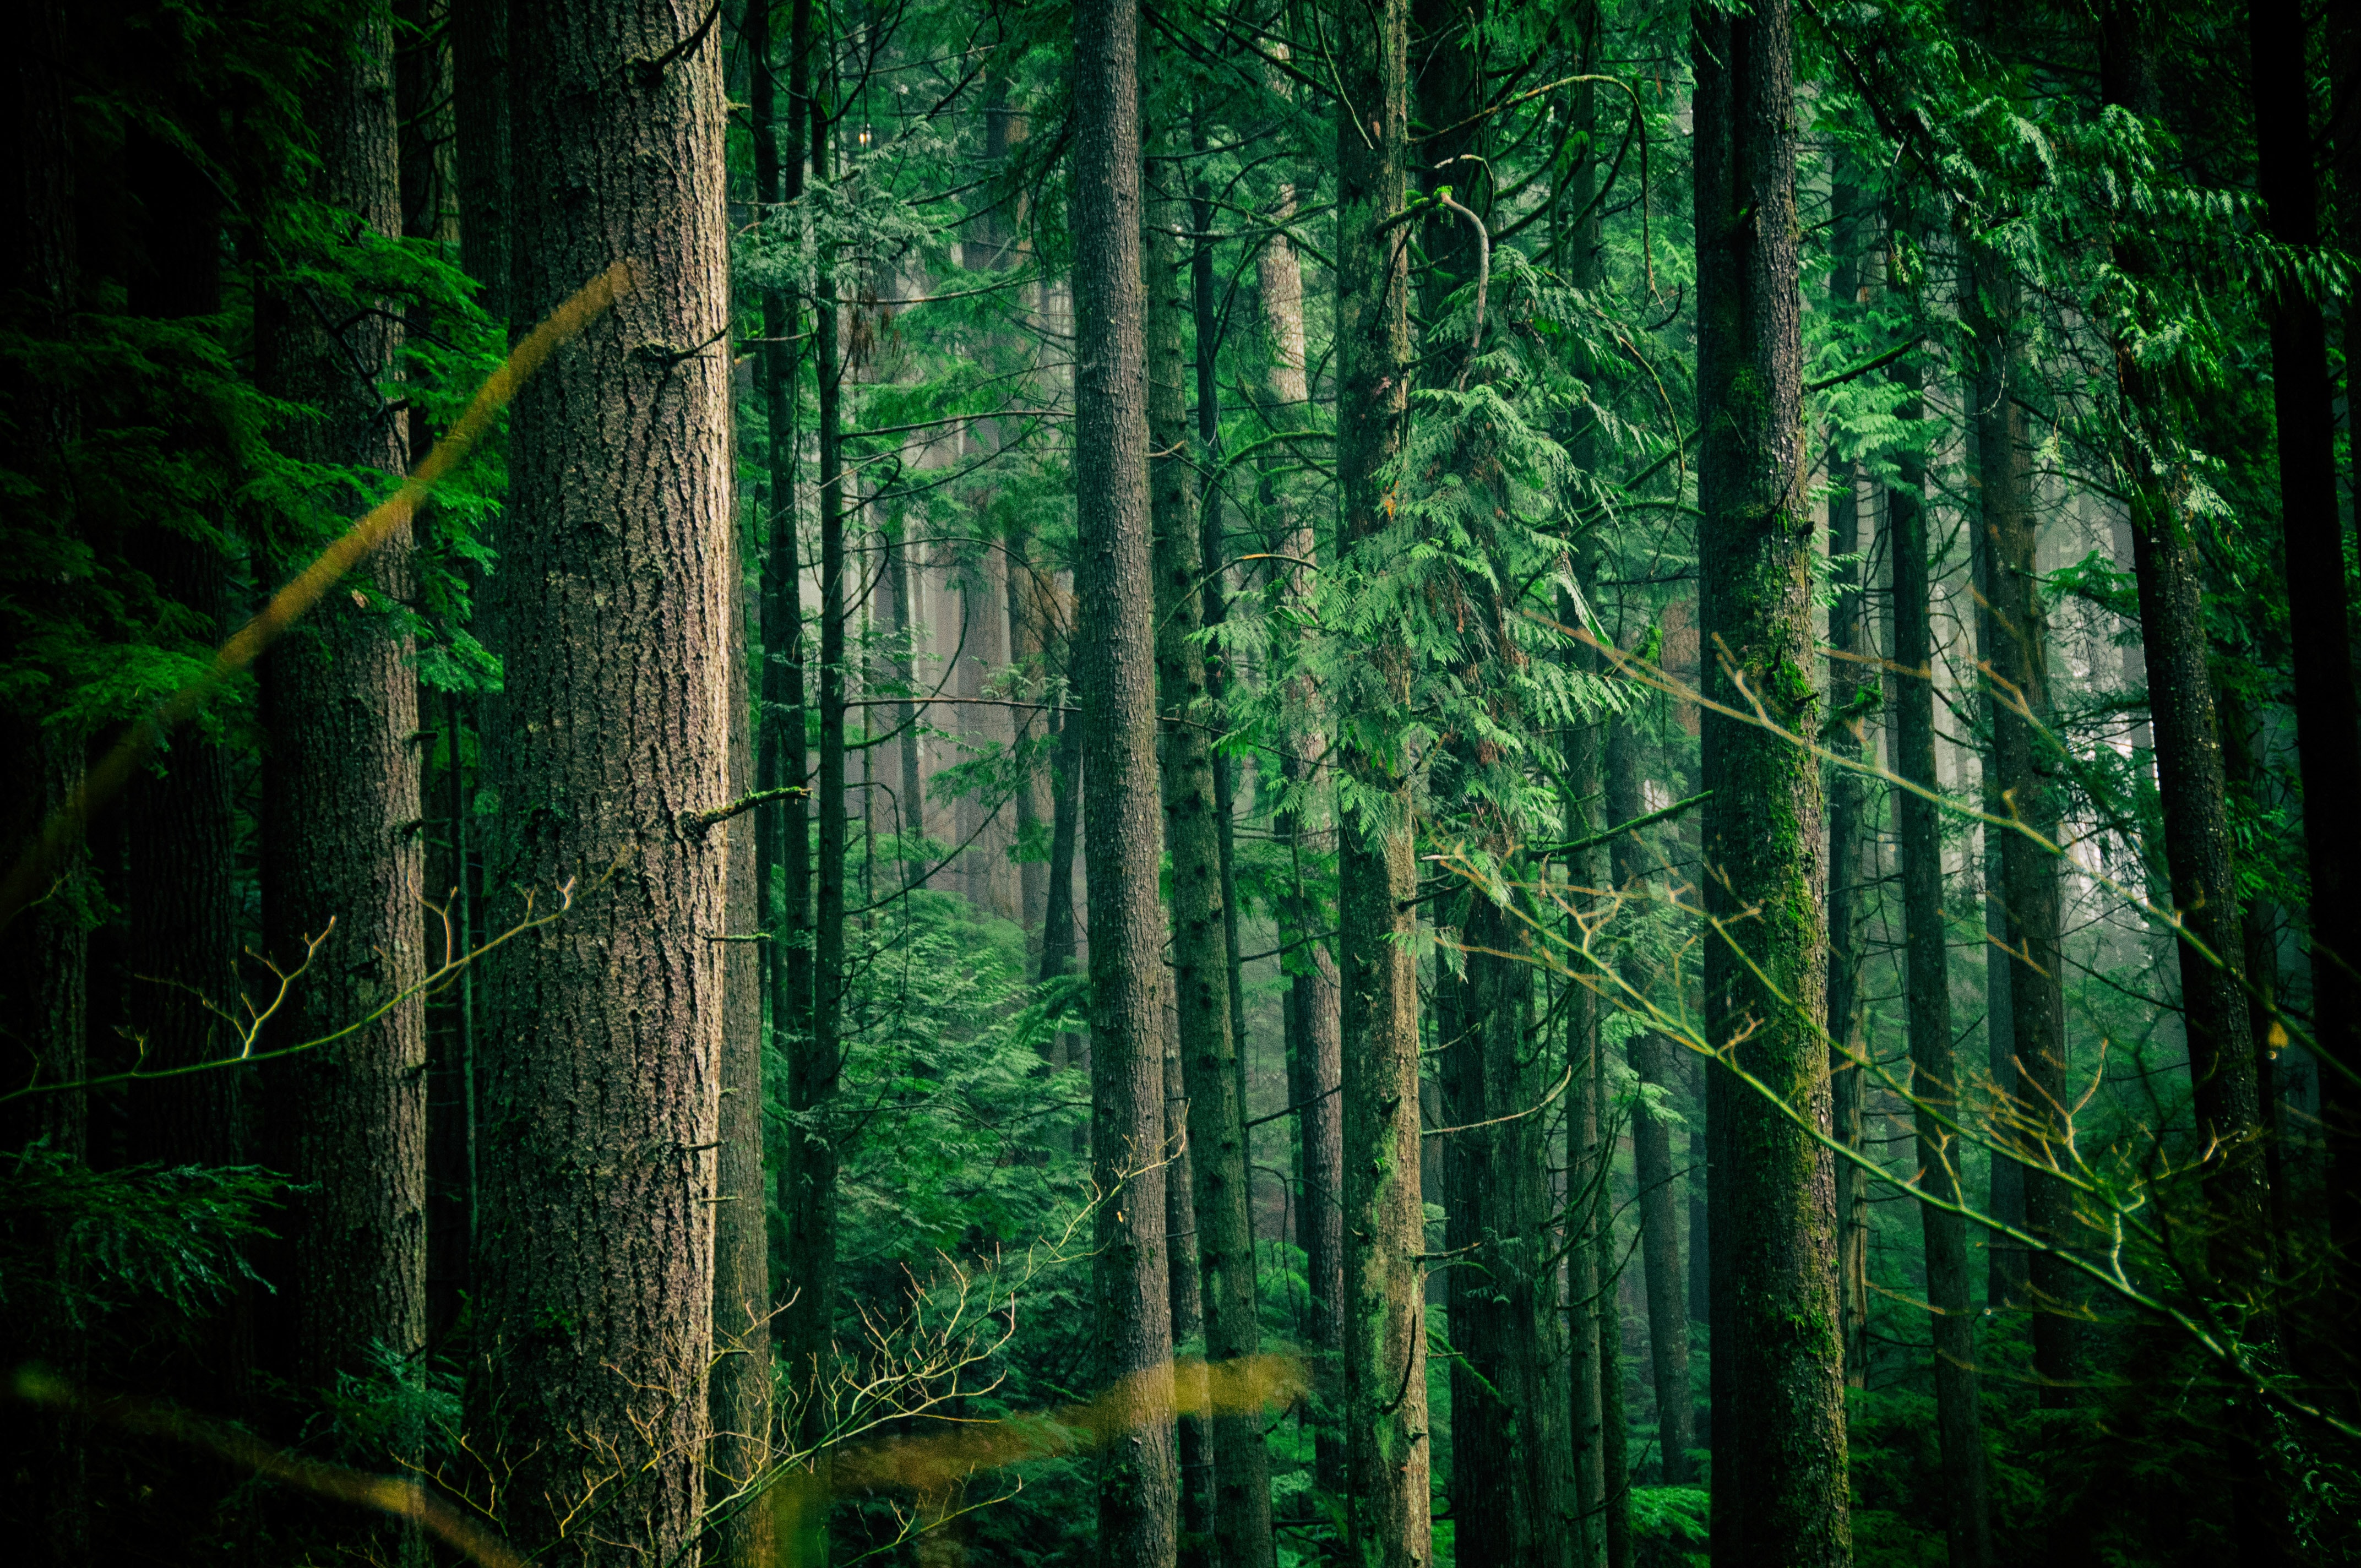 green leafed trees middle of forest during daytime